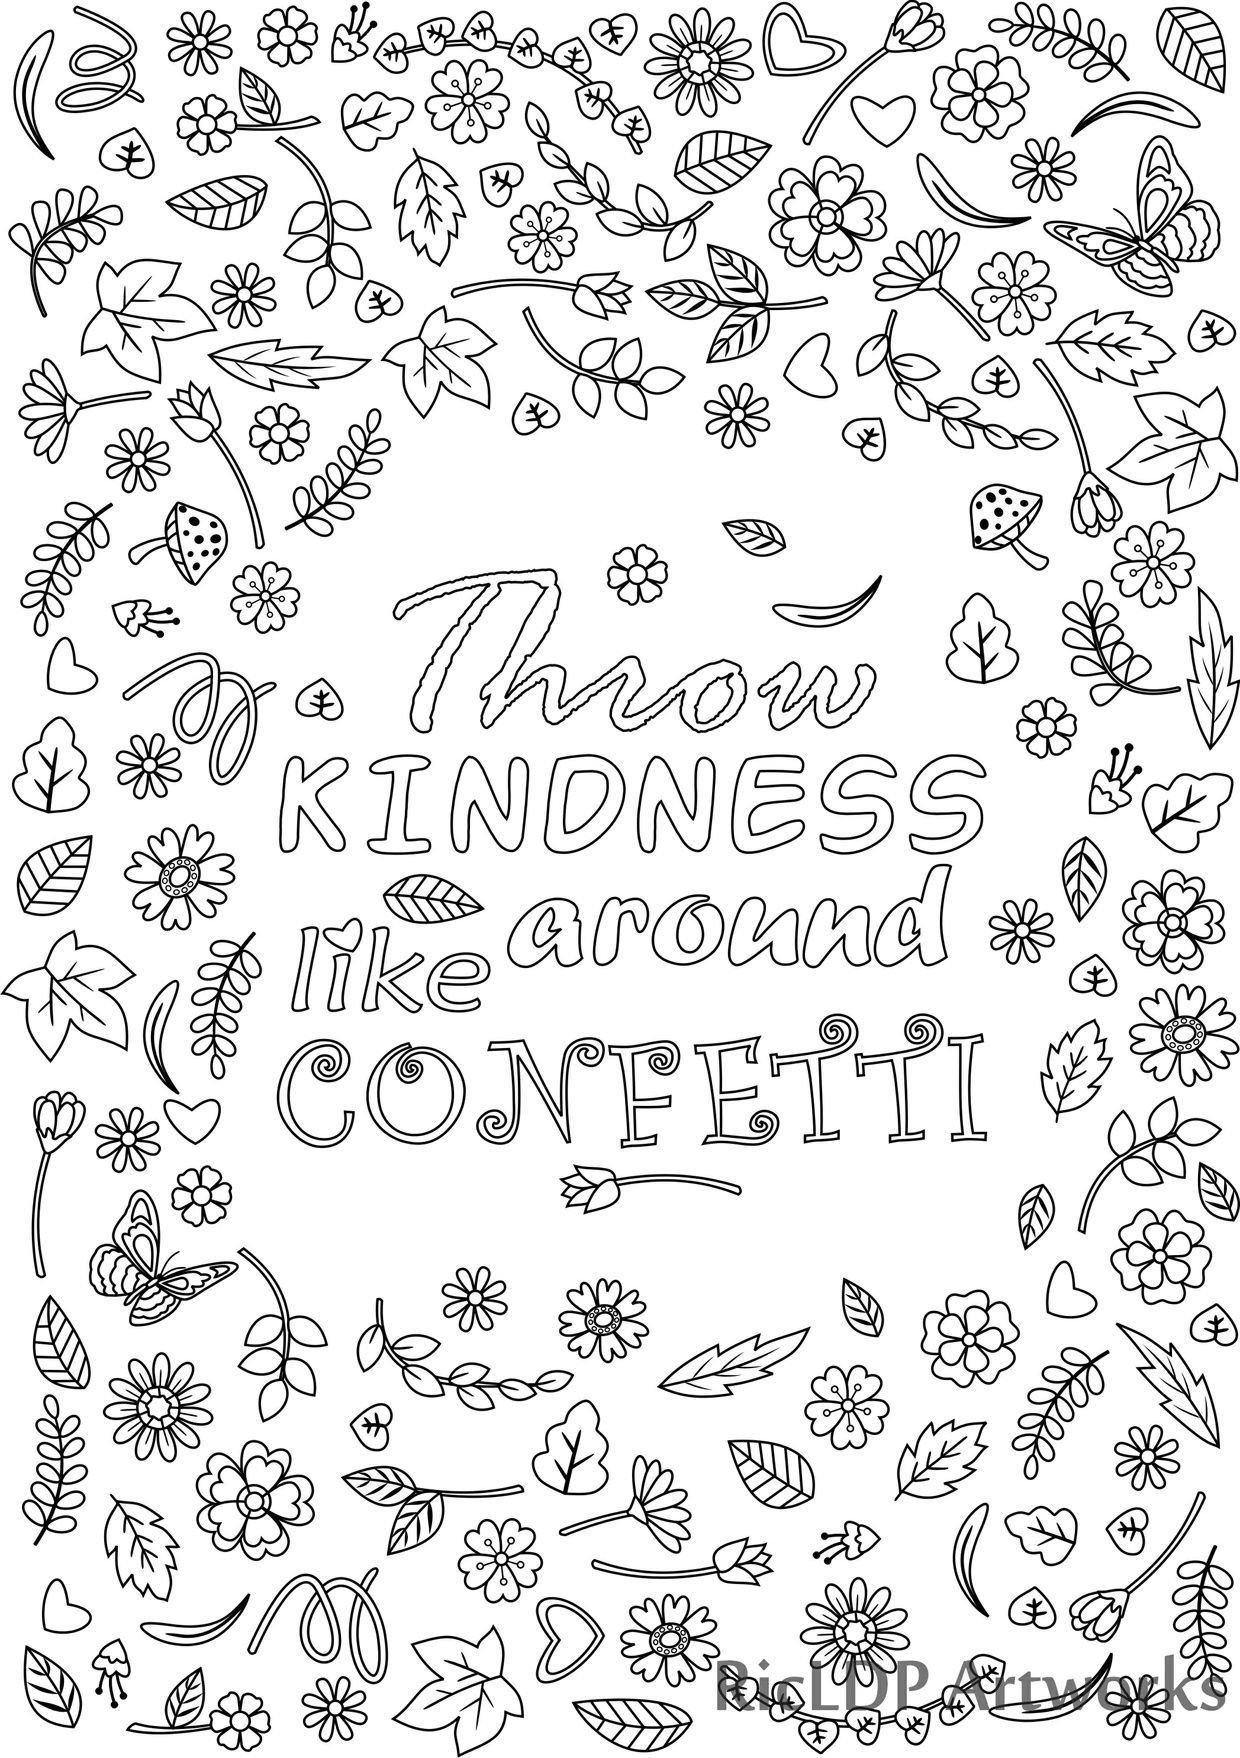 Throw Kindness Around Like Confetti Coloring Page For Grown Ups Flower Design With Blank Template Digital Download Quote Coloring Pages Coloring Pages For Grown Ups Printable Coloring Pages